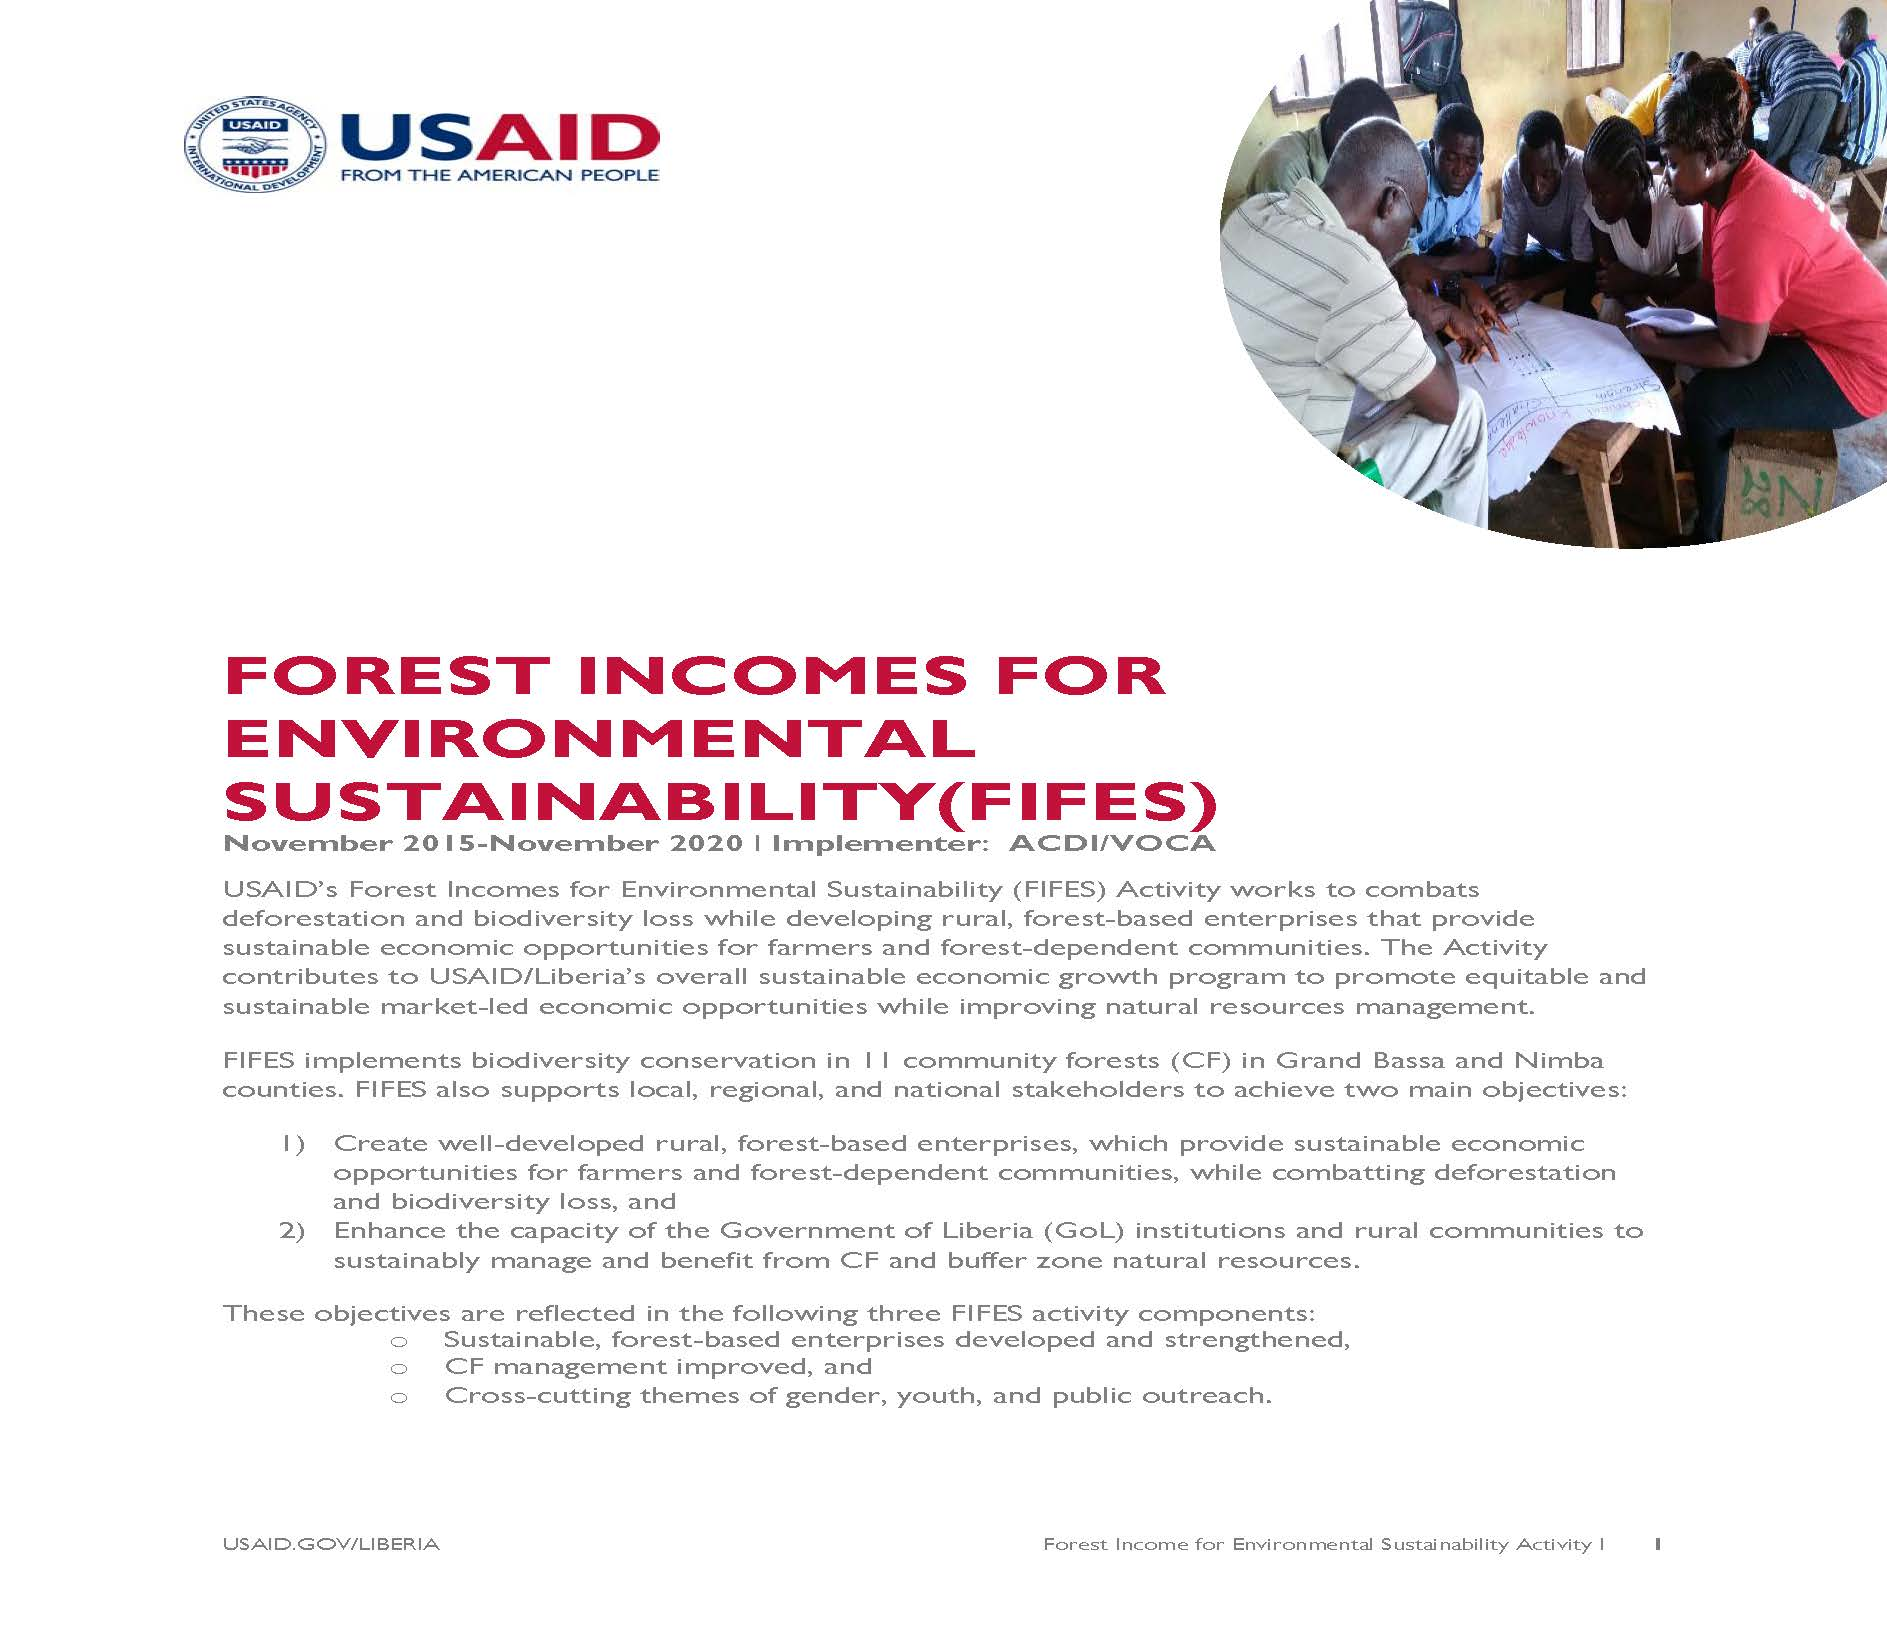 Forest Incomes for Environmental Sustainability Activity